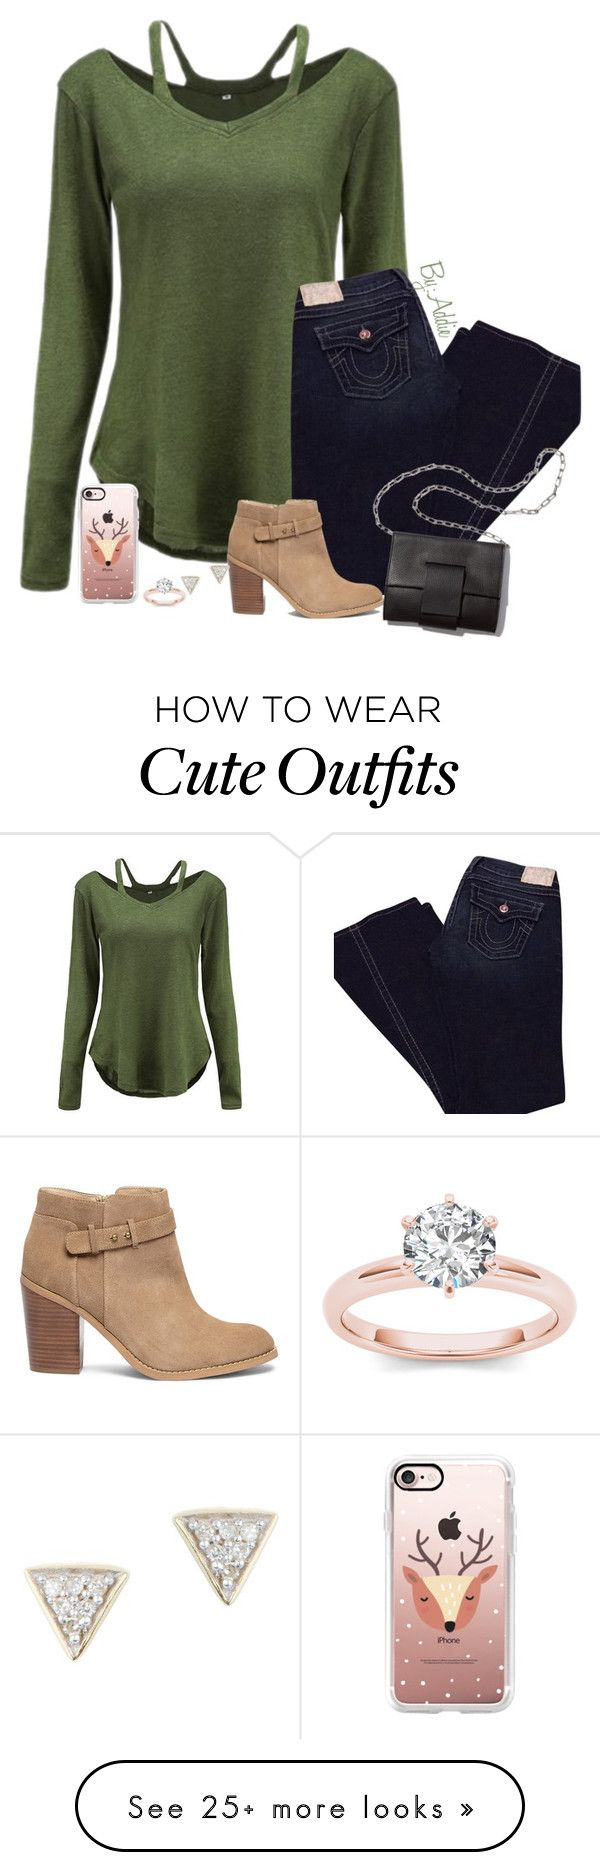 """Outfit by Addie"" by oliviamagic on Polyvore featuring True Religion, Sole Society, MM6 Maison Margiela, Casetify and Adina Reyter"